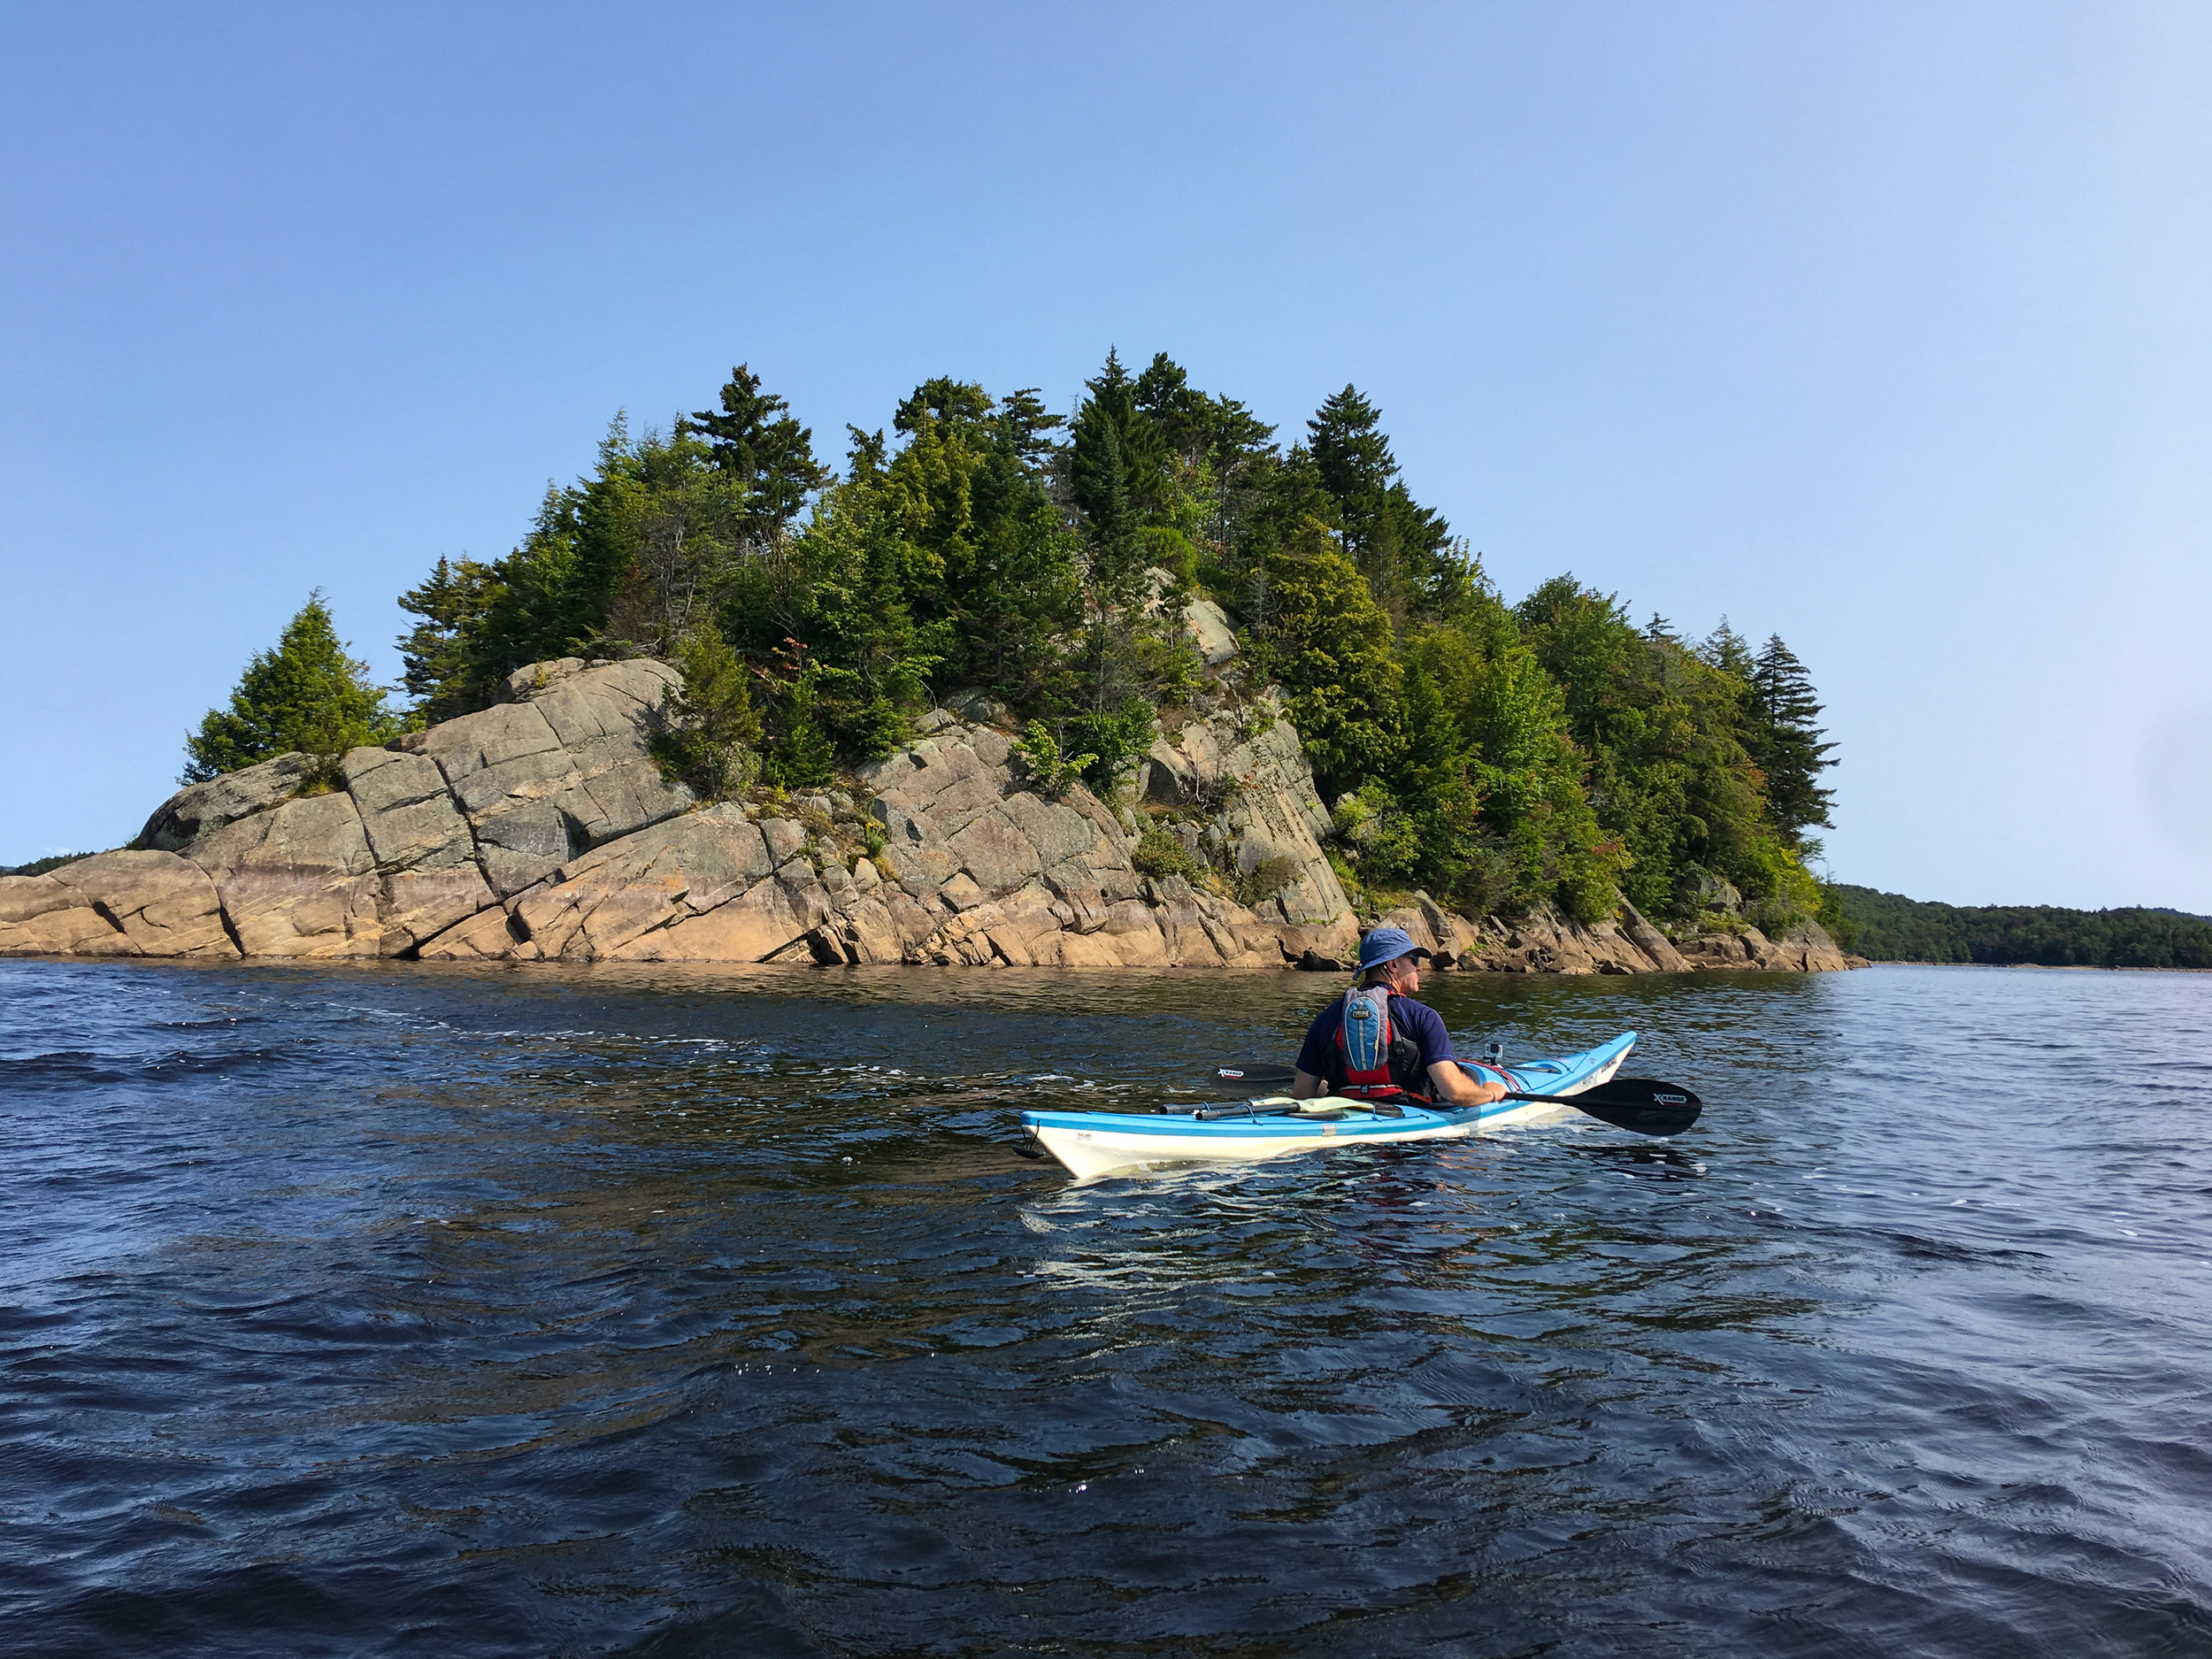 Exploring one of the many rock islands on Stillwater.